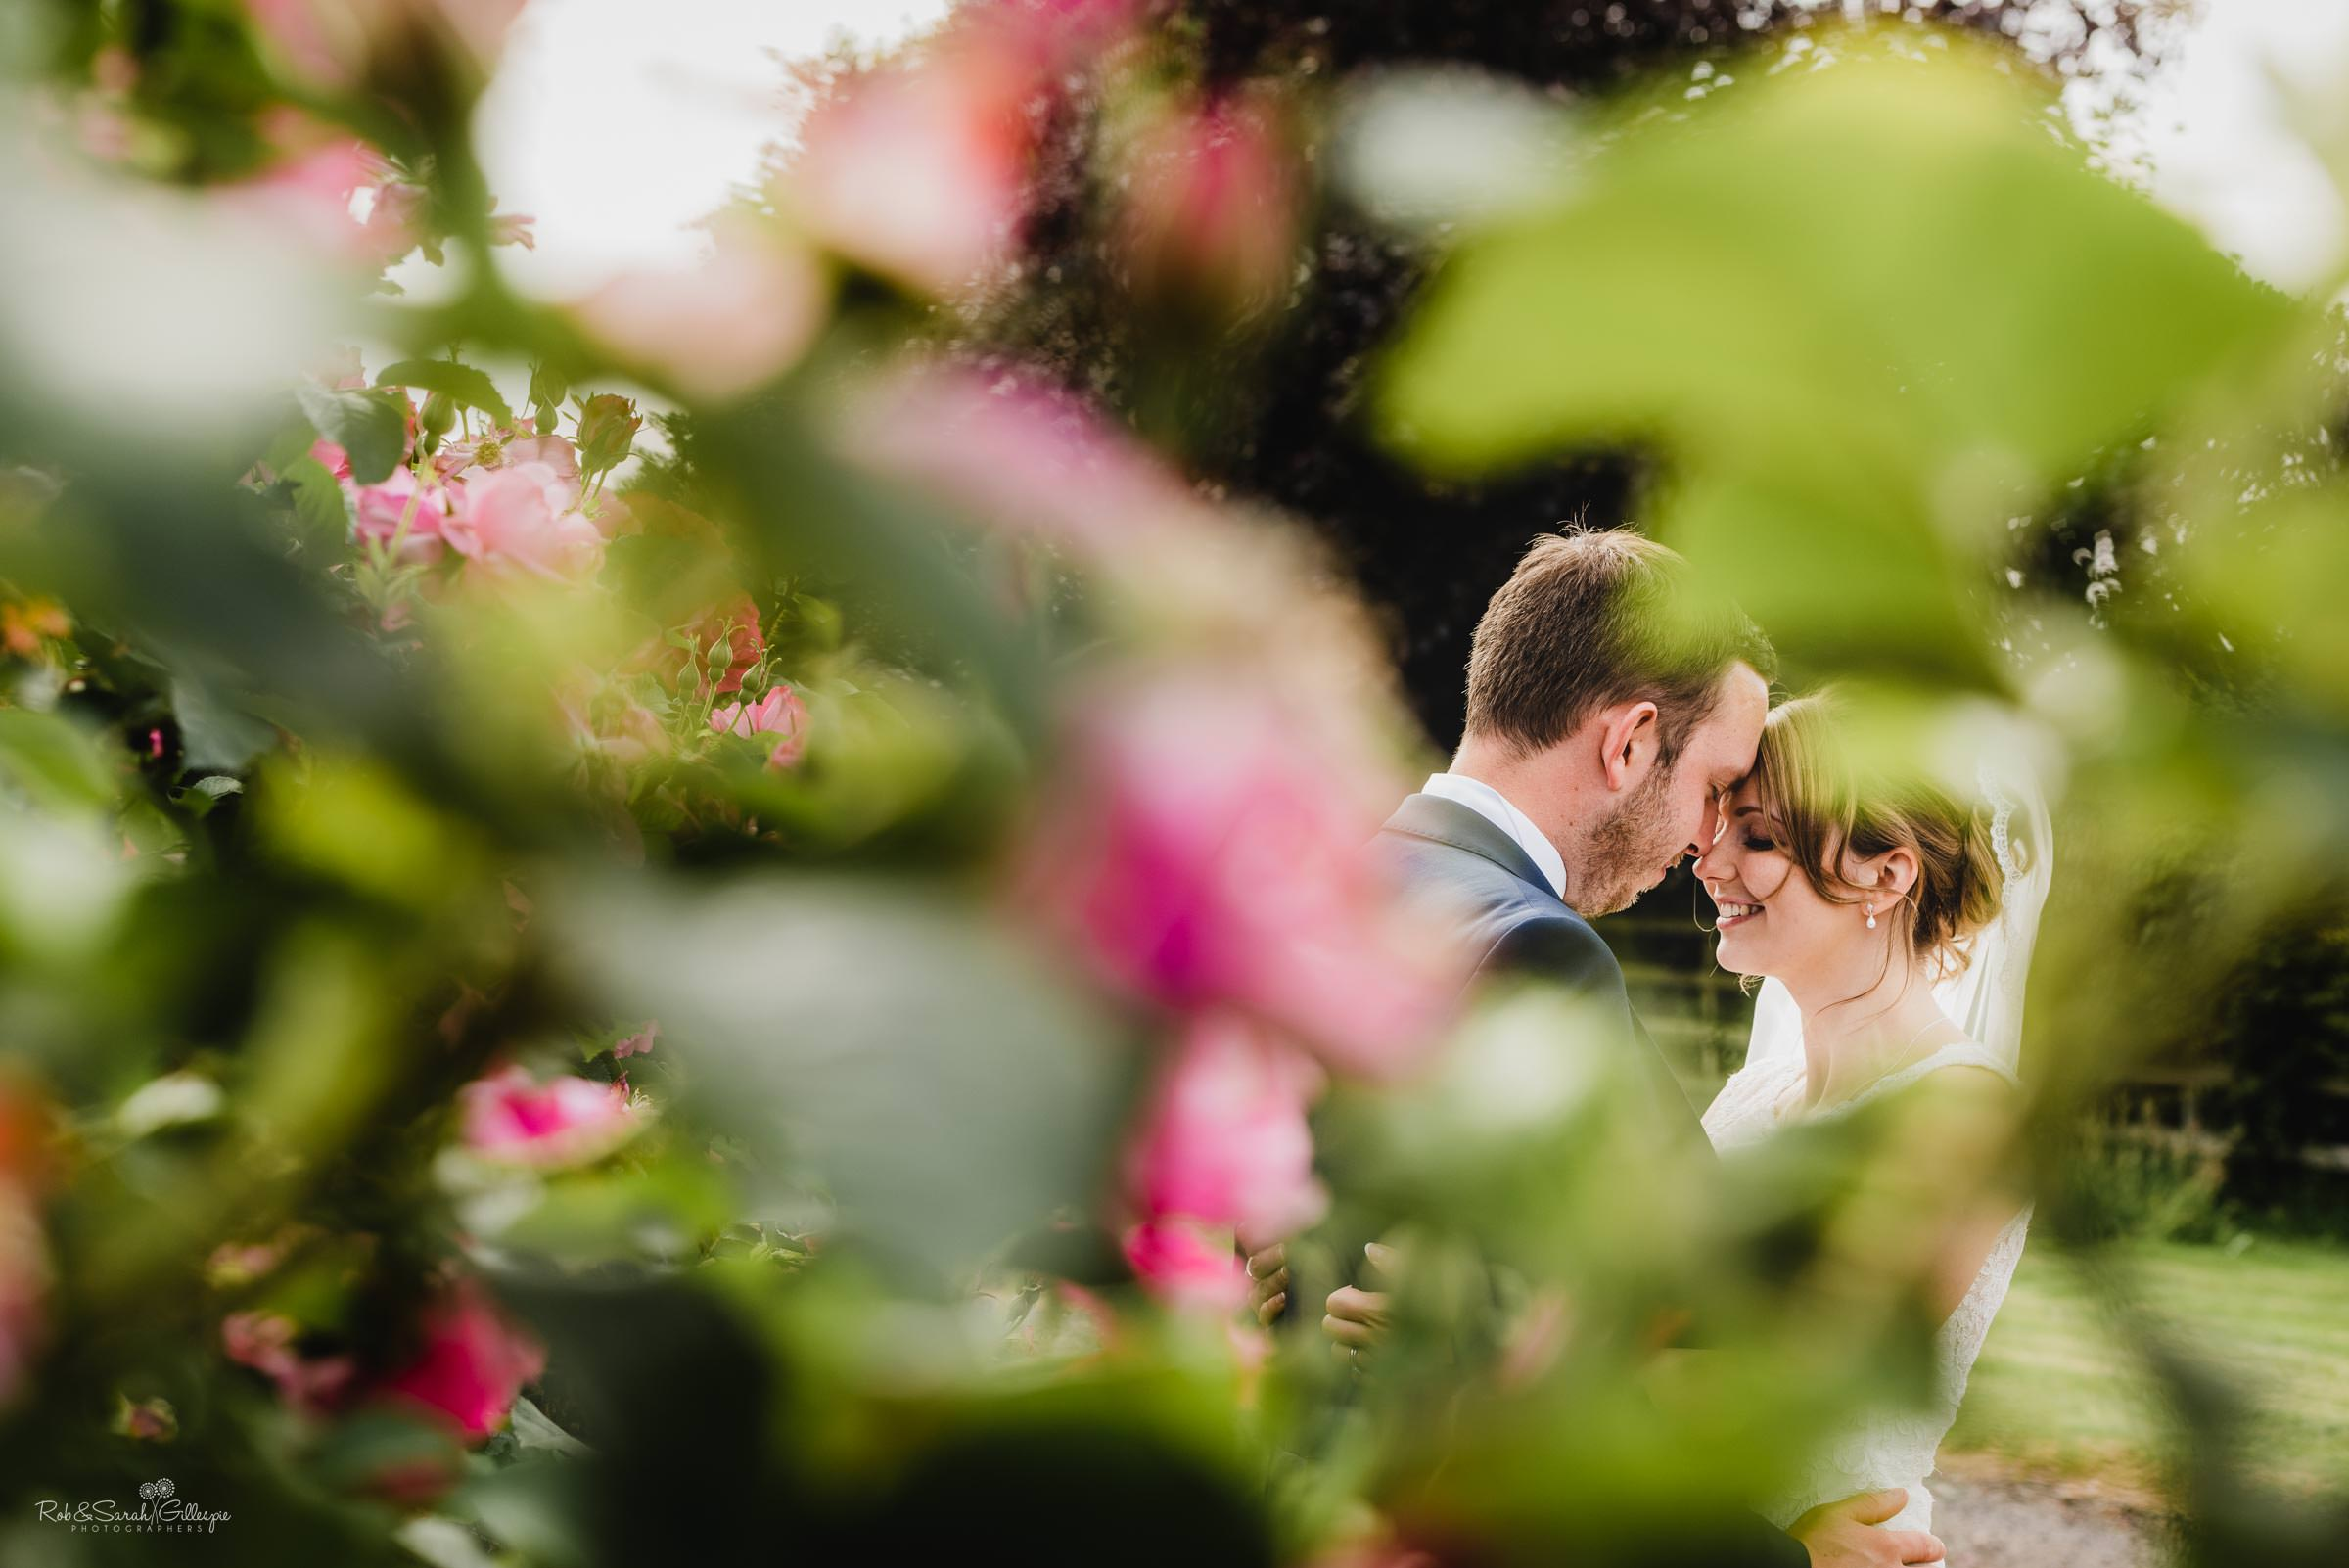 Beautiful natural wedding photography at Swallows Nest Barn by Rob & Sarah Gillespie